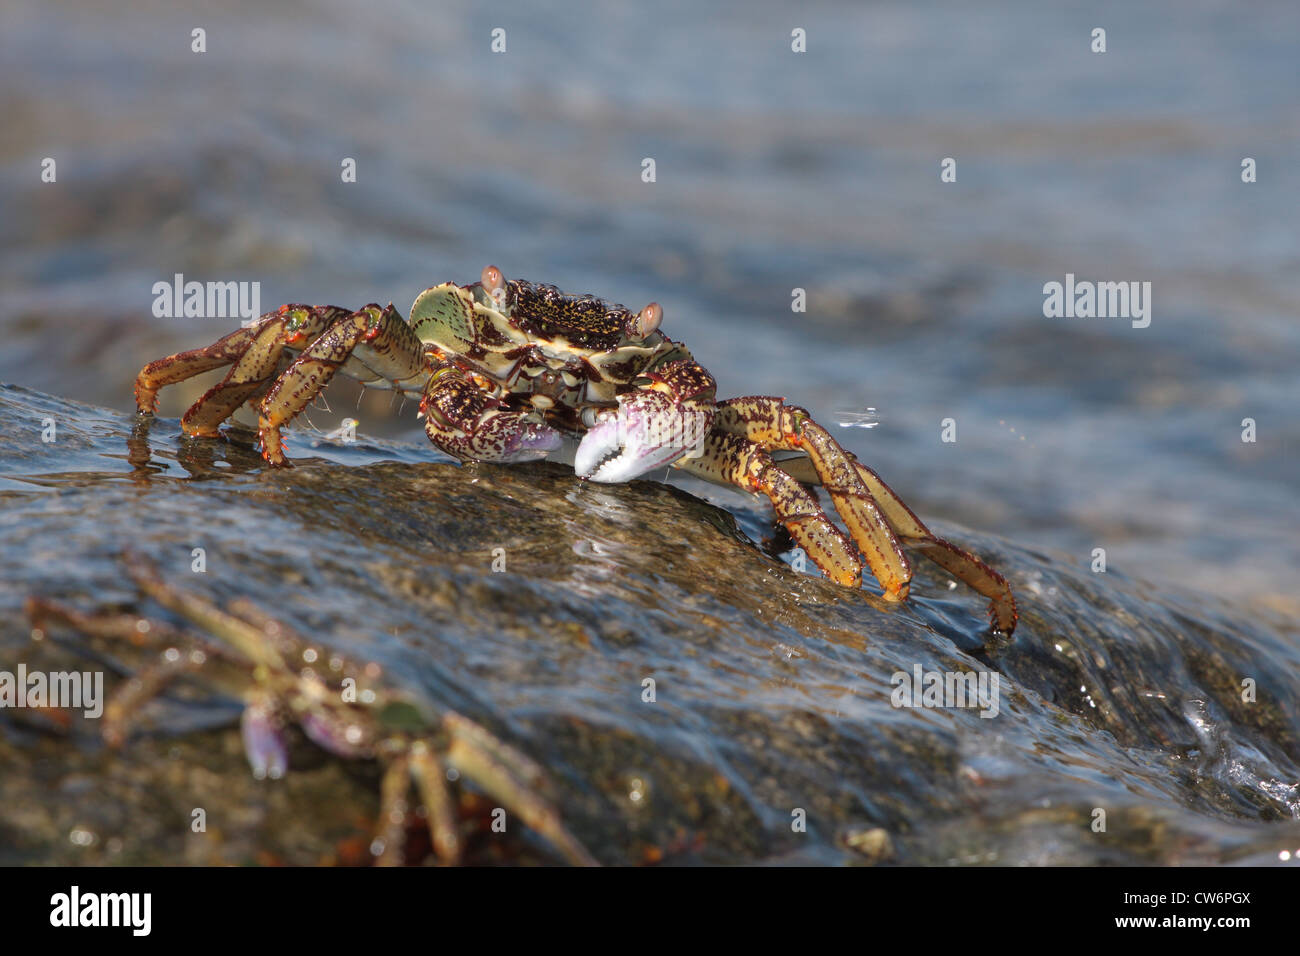 marsh crabs, shore crabs, talon crabs (Grapsus spec., Grapsidae), two animals on a rock wet from the surf, Thailand, - Stock Image